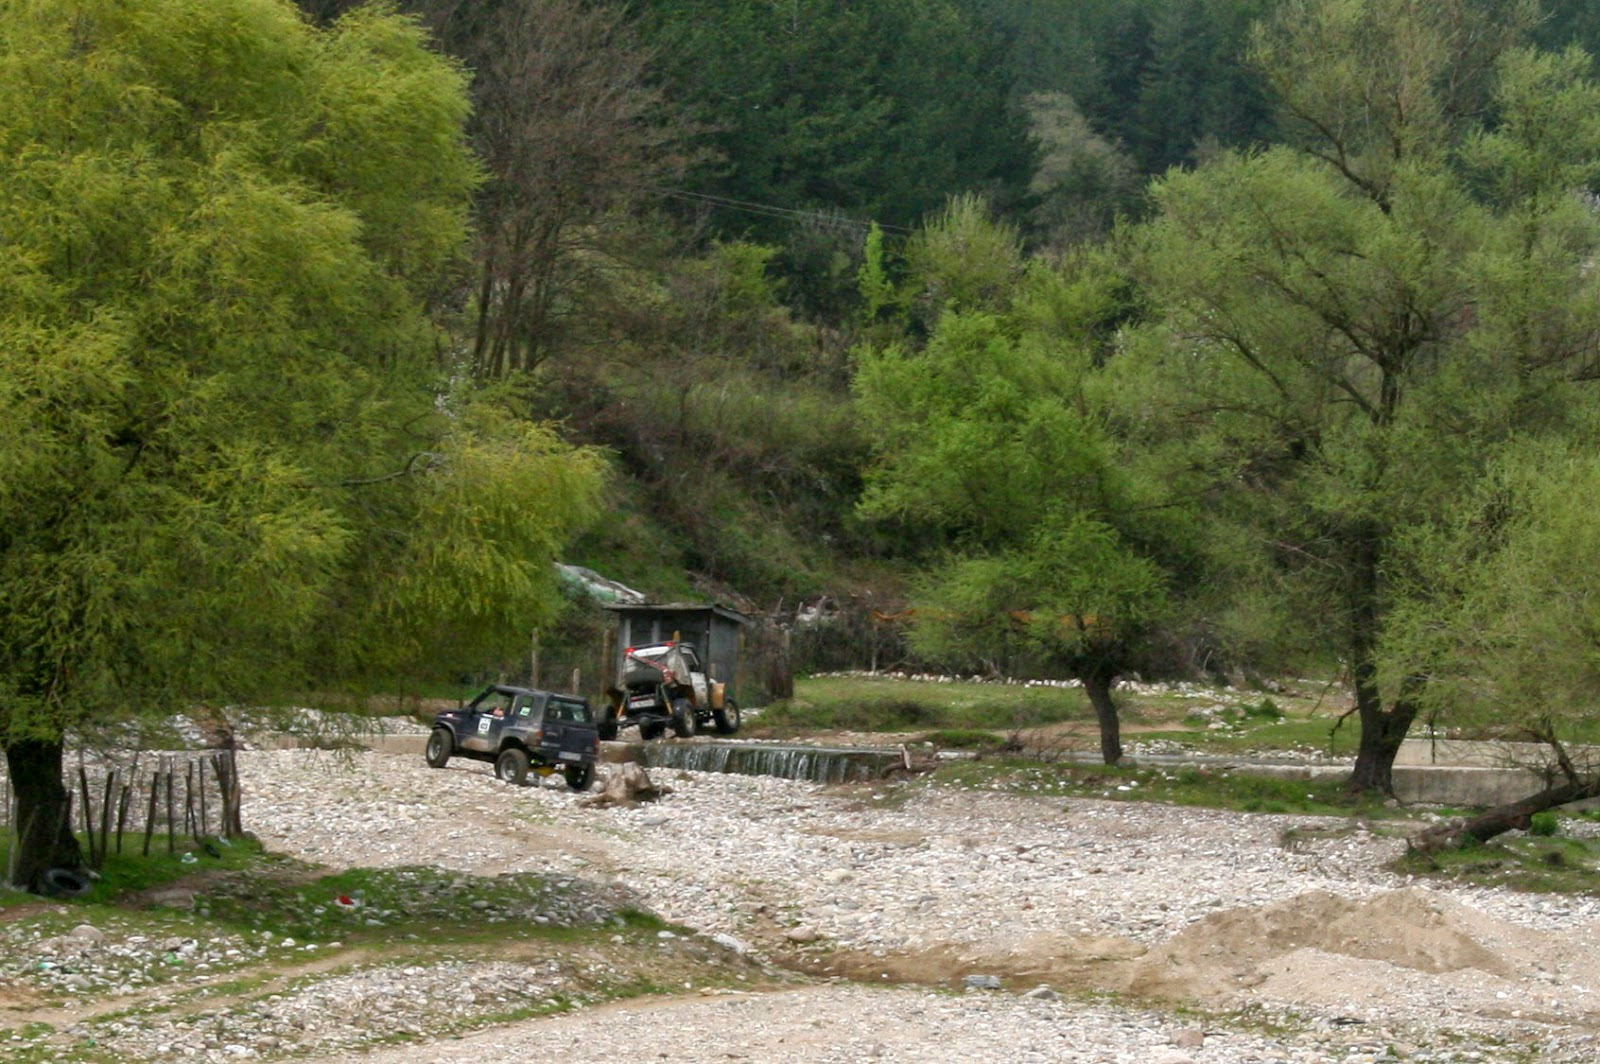 The four wheel drive vehicle after climbing the weir